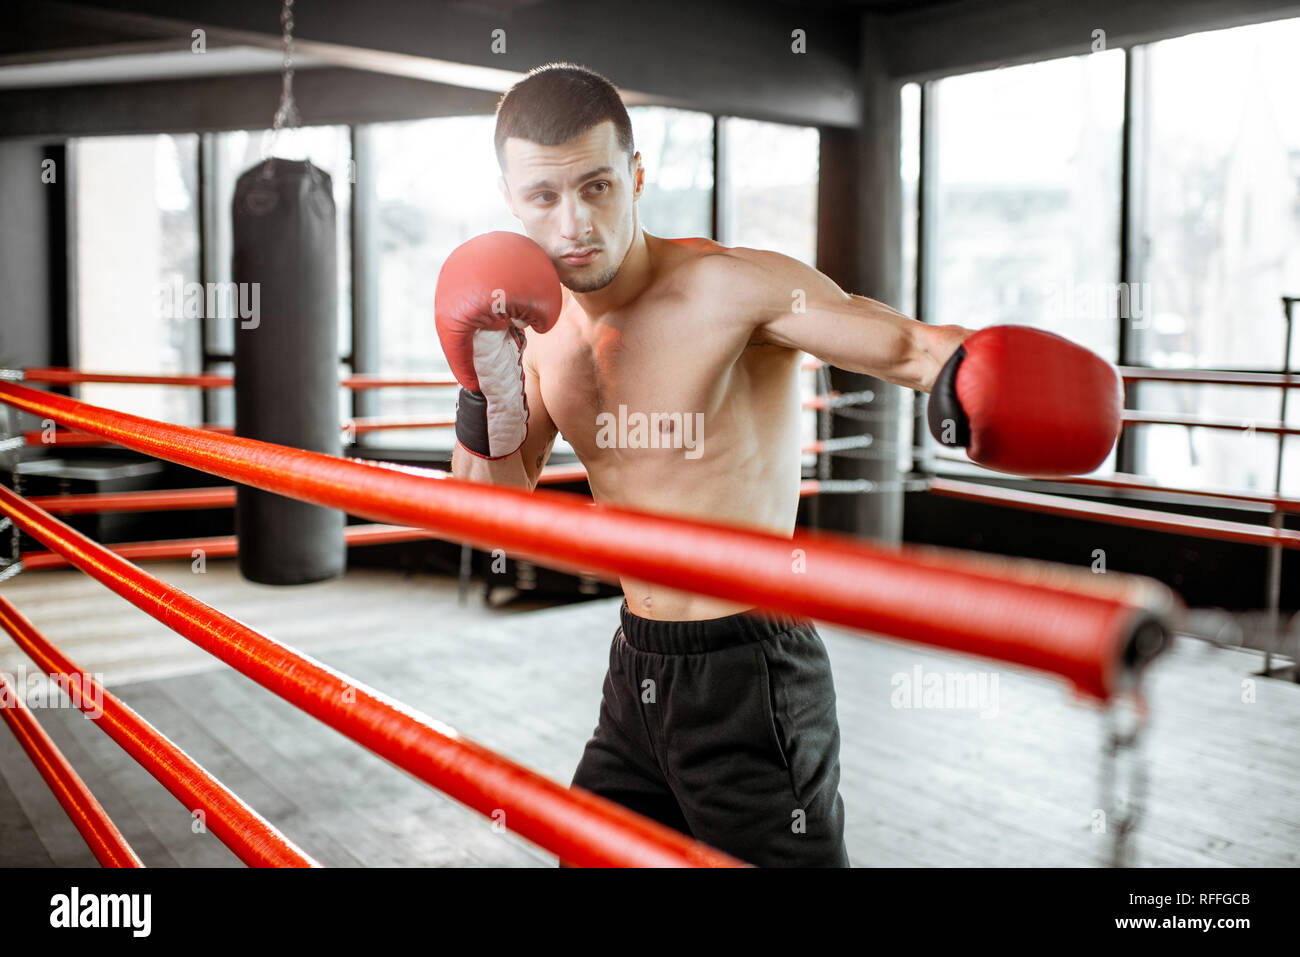 Young athletic man hard training to box, fighting on the boxing ring at the gym - Stock Image